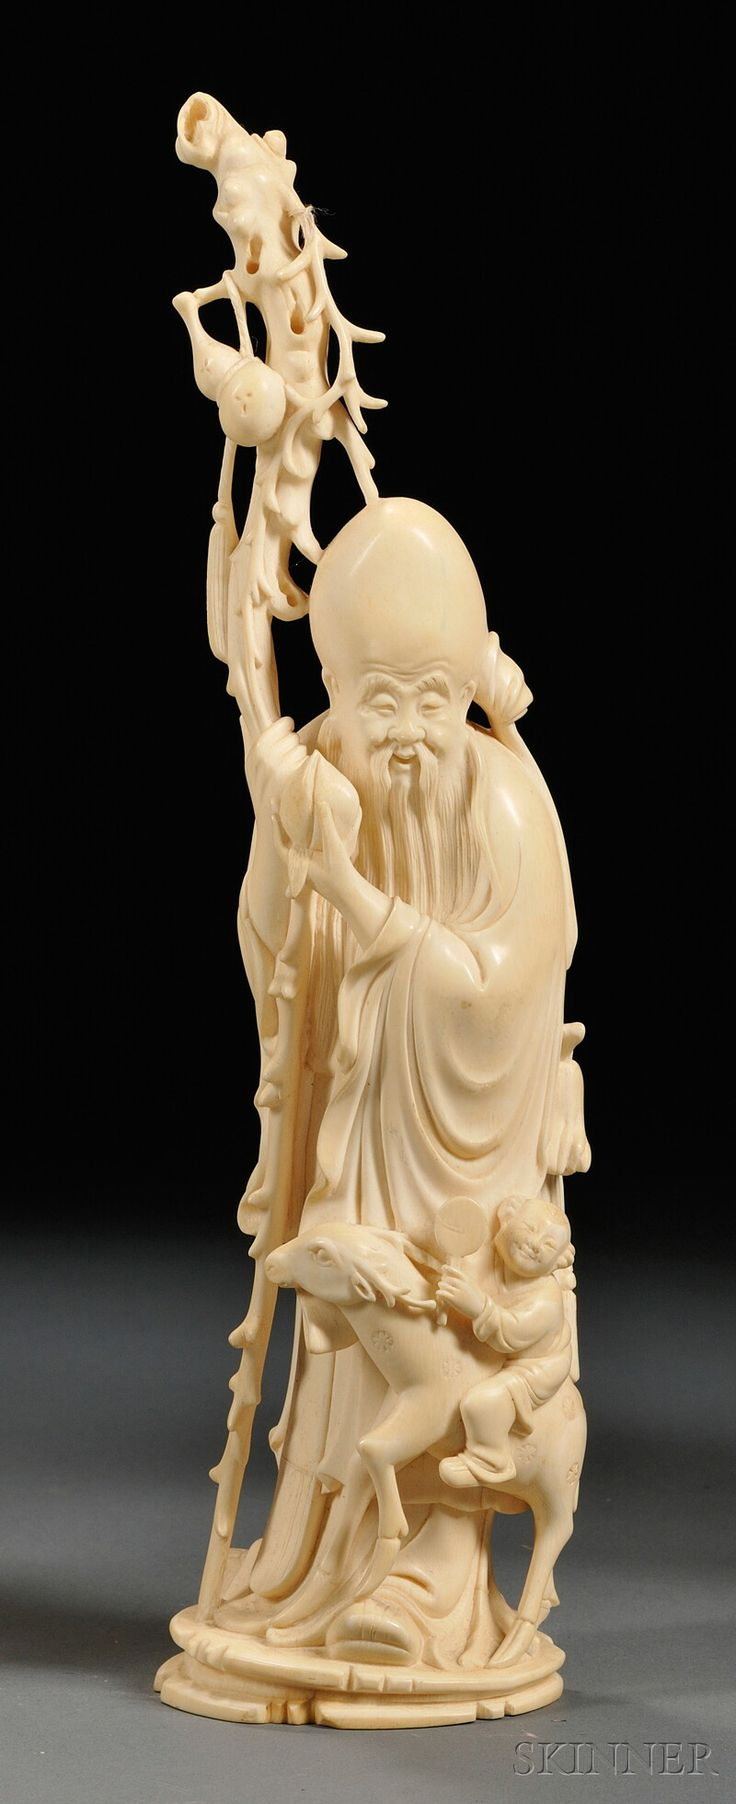 74 best Ivory images on Pinterest | Ivory, Asian art and Japanese art